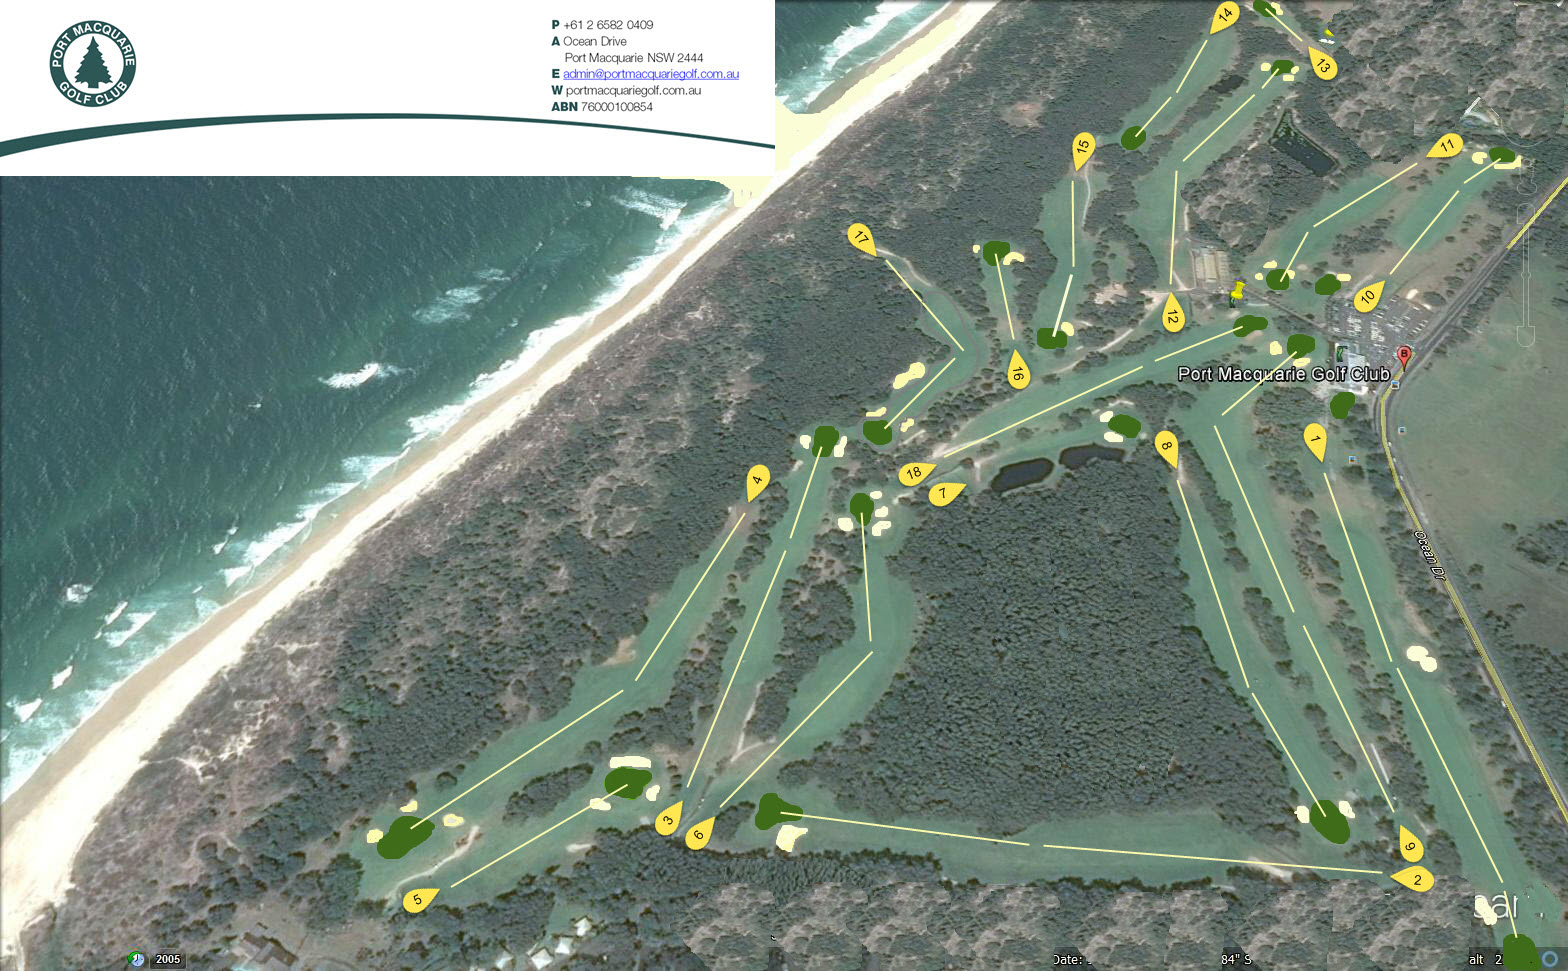 Port Macquarie Course Map